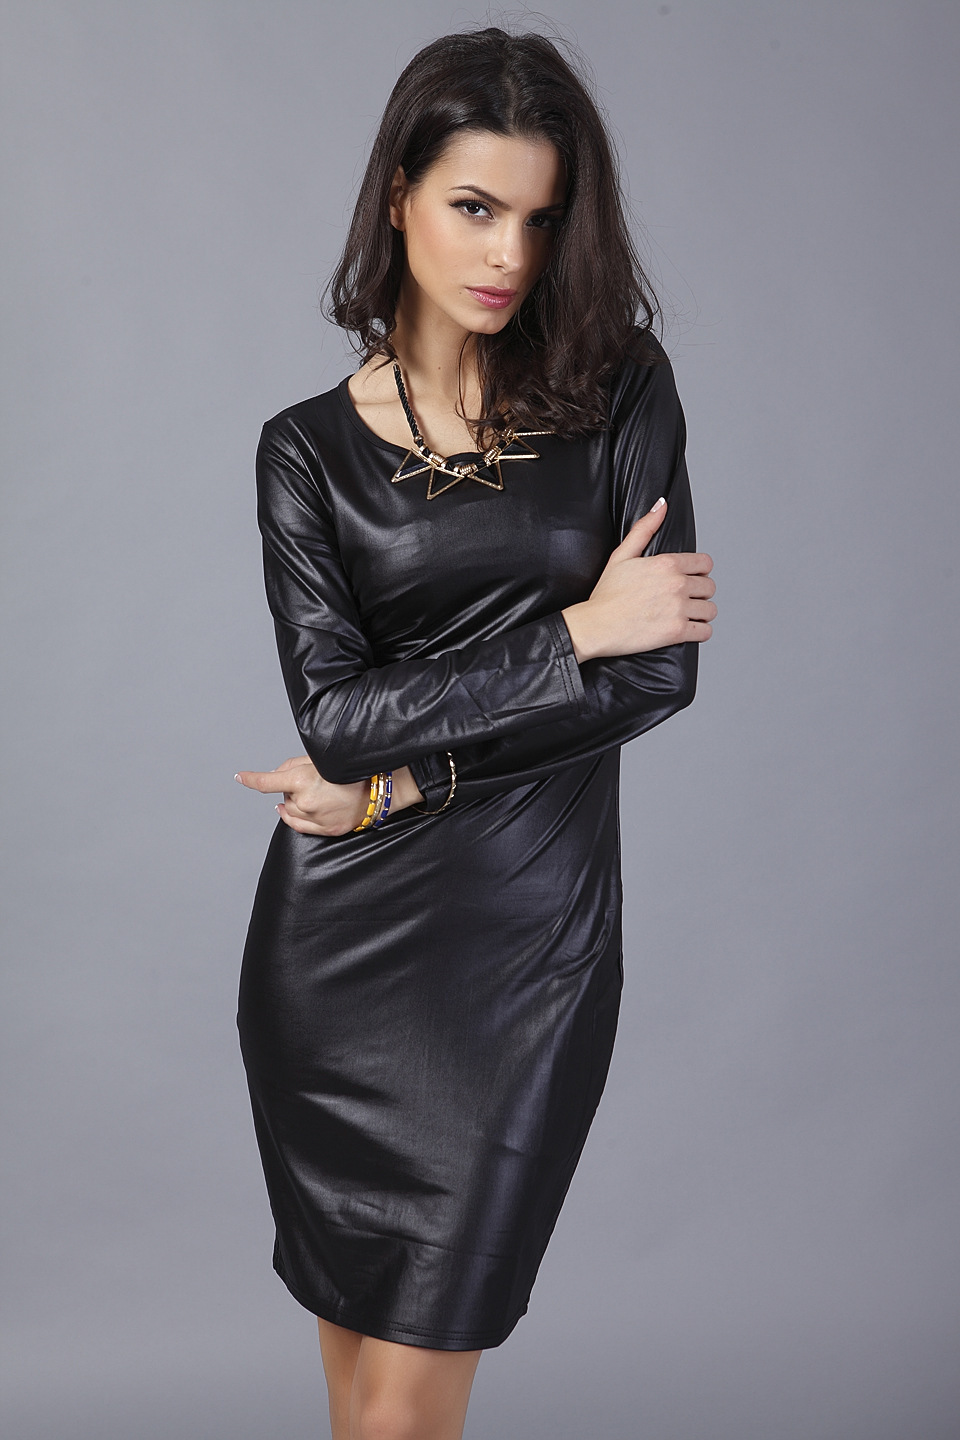 7ad4152cf91ba Summer Dress 2017 New Arrival Woman Fashion Thin Faux Leather Dress Long  Sleeve Above Knee Mini Sexy Black Bodycon Women Dresses-in Dresses from  Women's ...